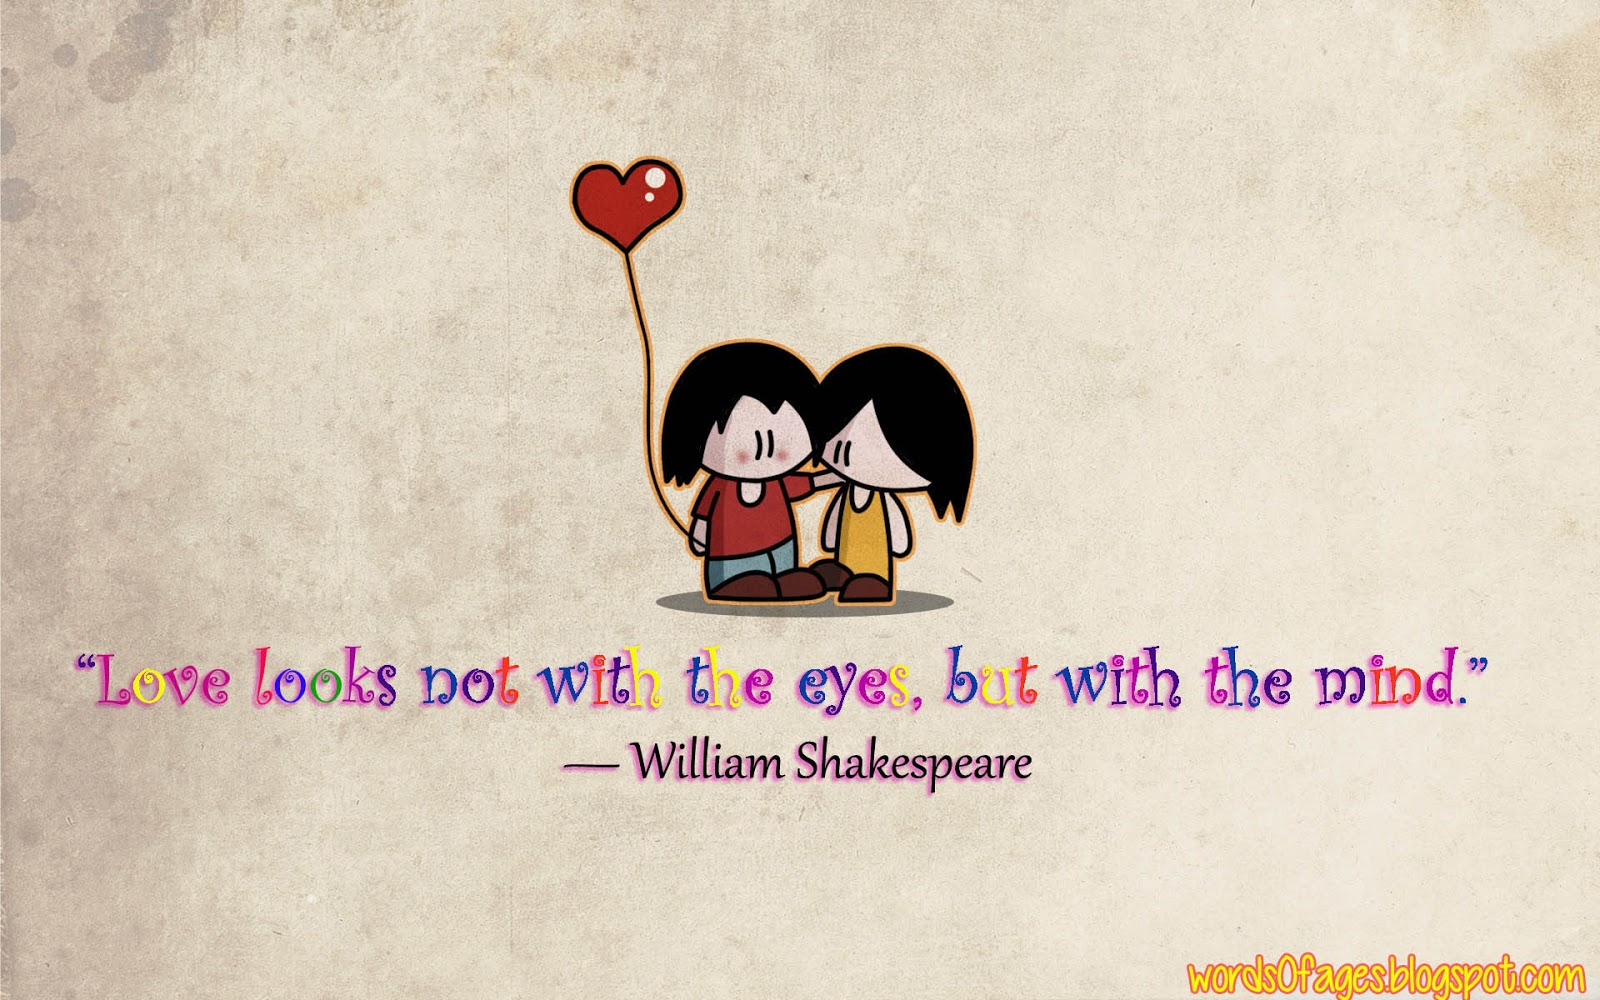 Shakespeare In Love Quotes Words Of Ages  Awesome Quotes That Will Change The Way You Think